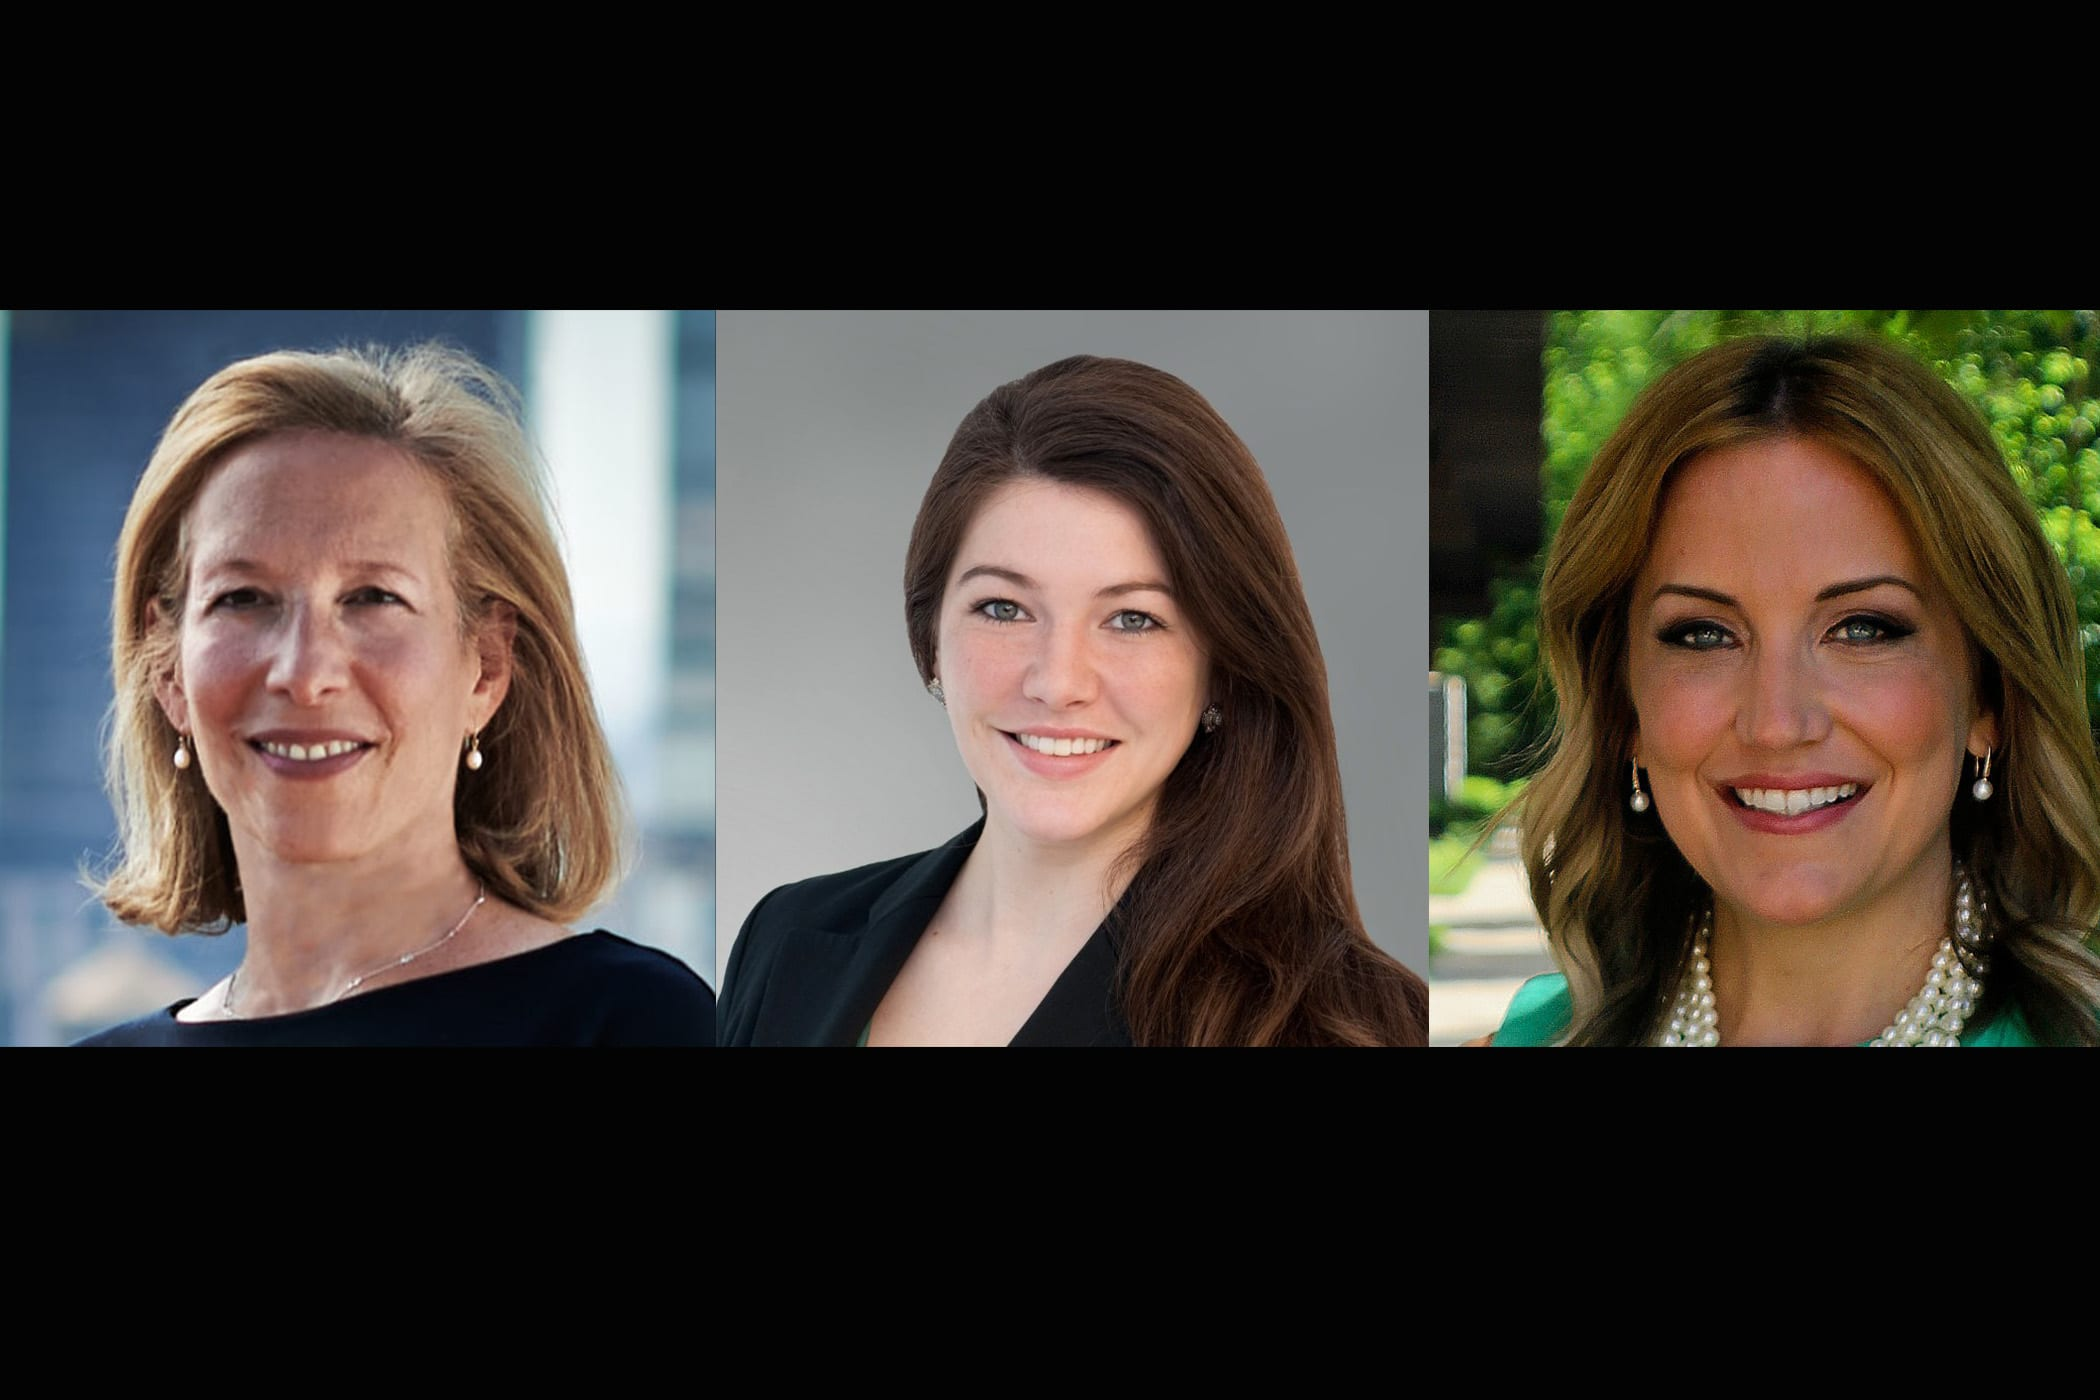 Women Panel 1 Top Female CRE Pros on the Future of Women in the Industry